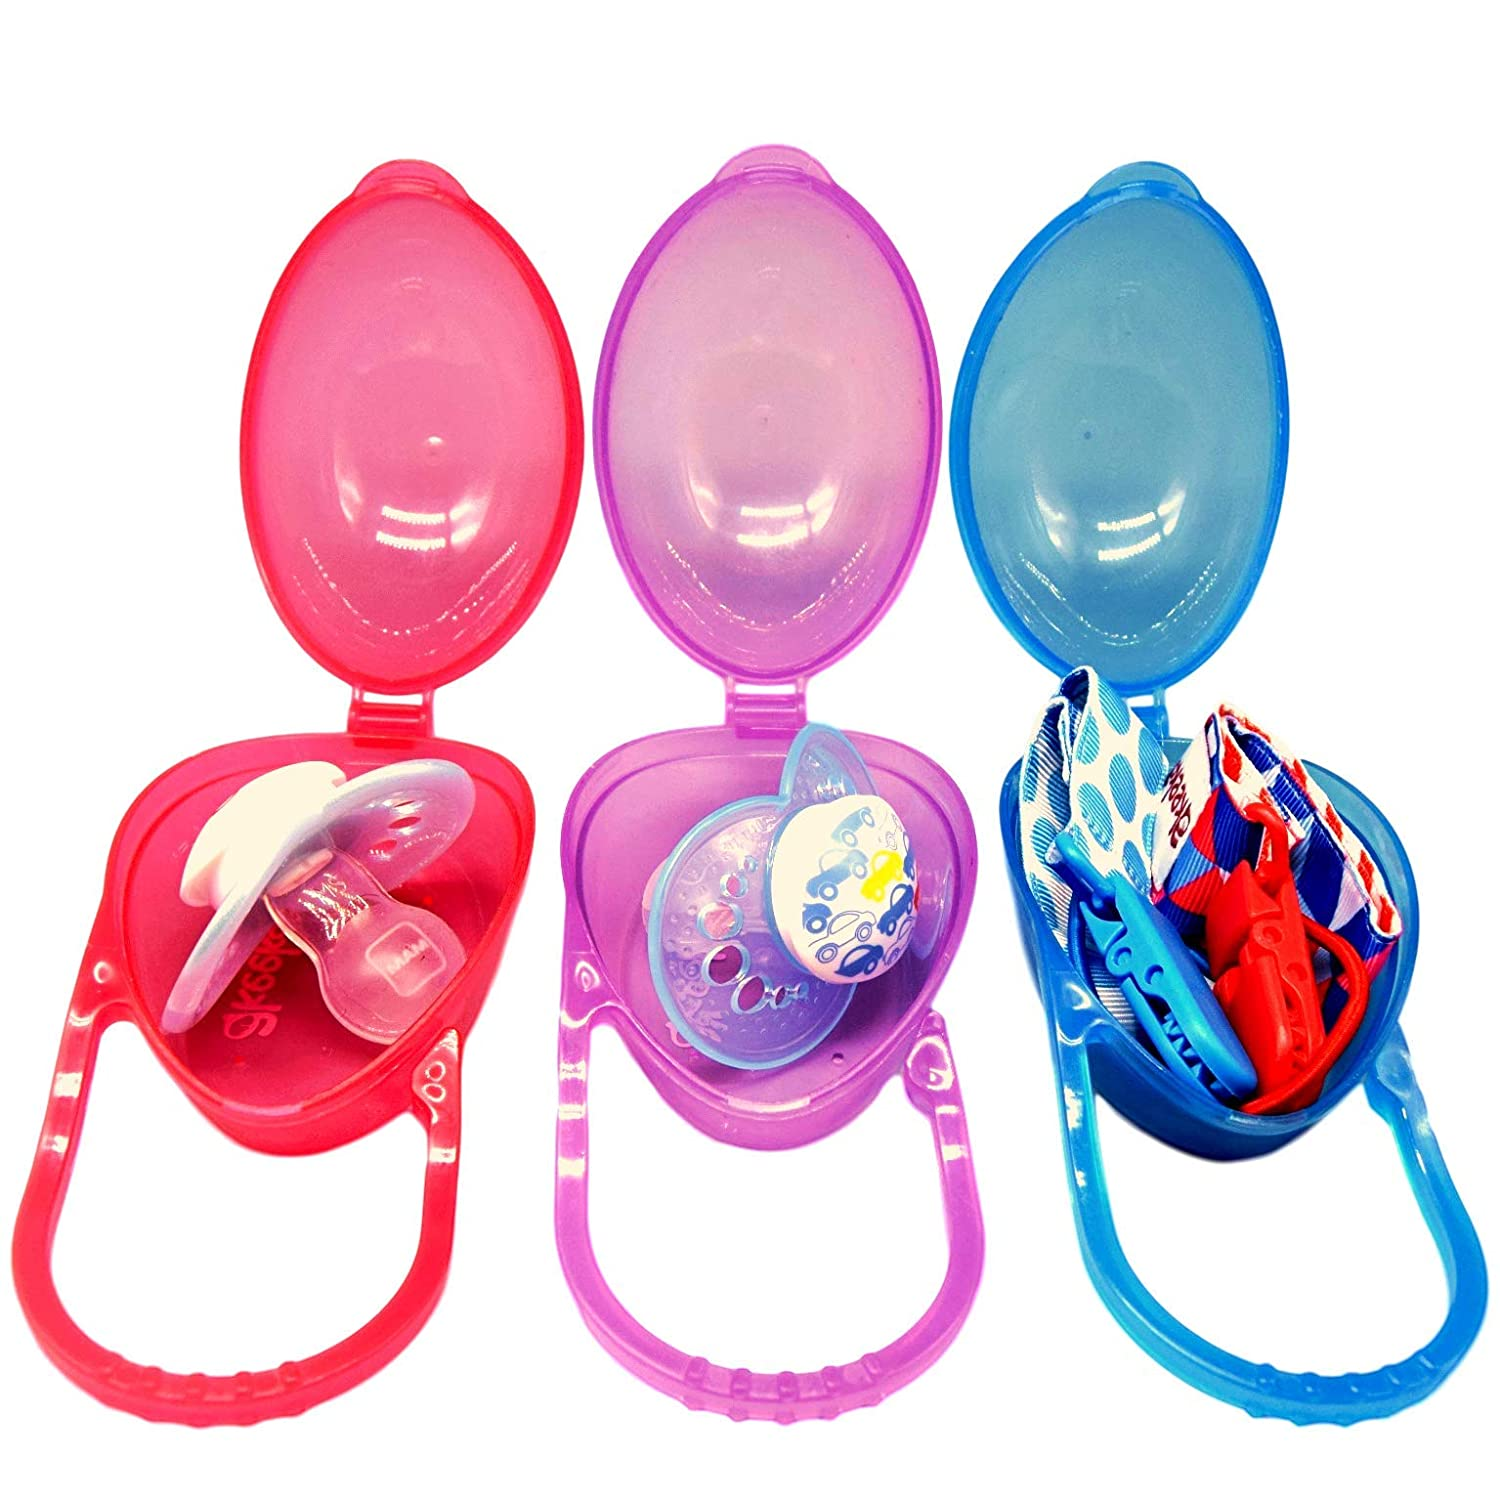 Easy-Clean Dummy Box and Pacifier Holder with Cute and Colourful Designs 3 Pack Purple /& Blue Safe BPA-Free and Versatile Soother Case with Free Mesh Bag Baby Dummy Case by Akeekah Red